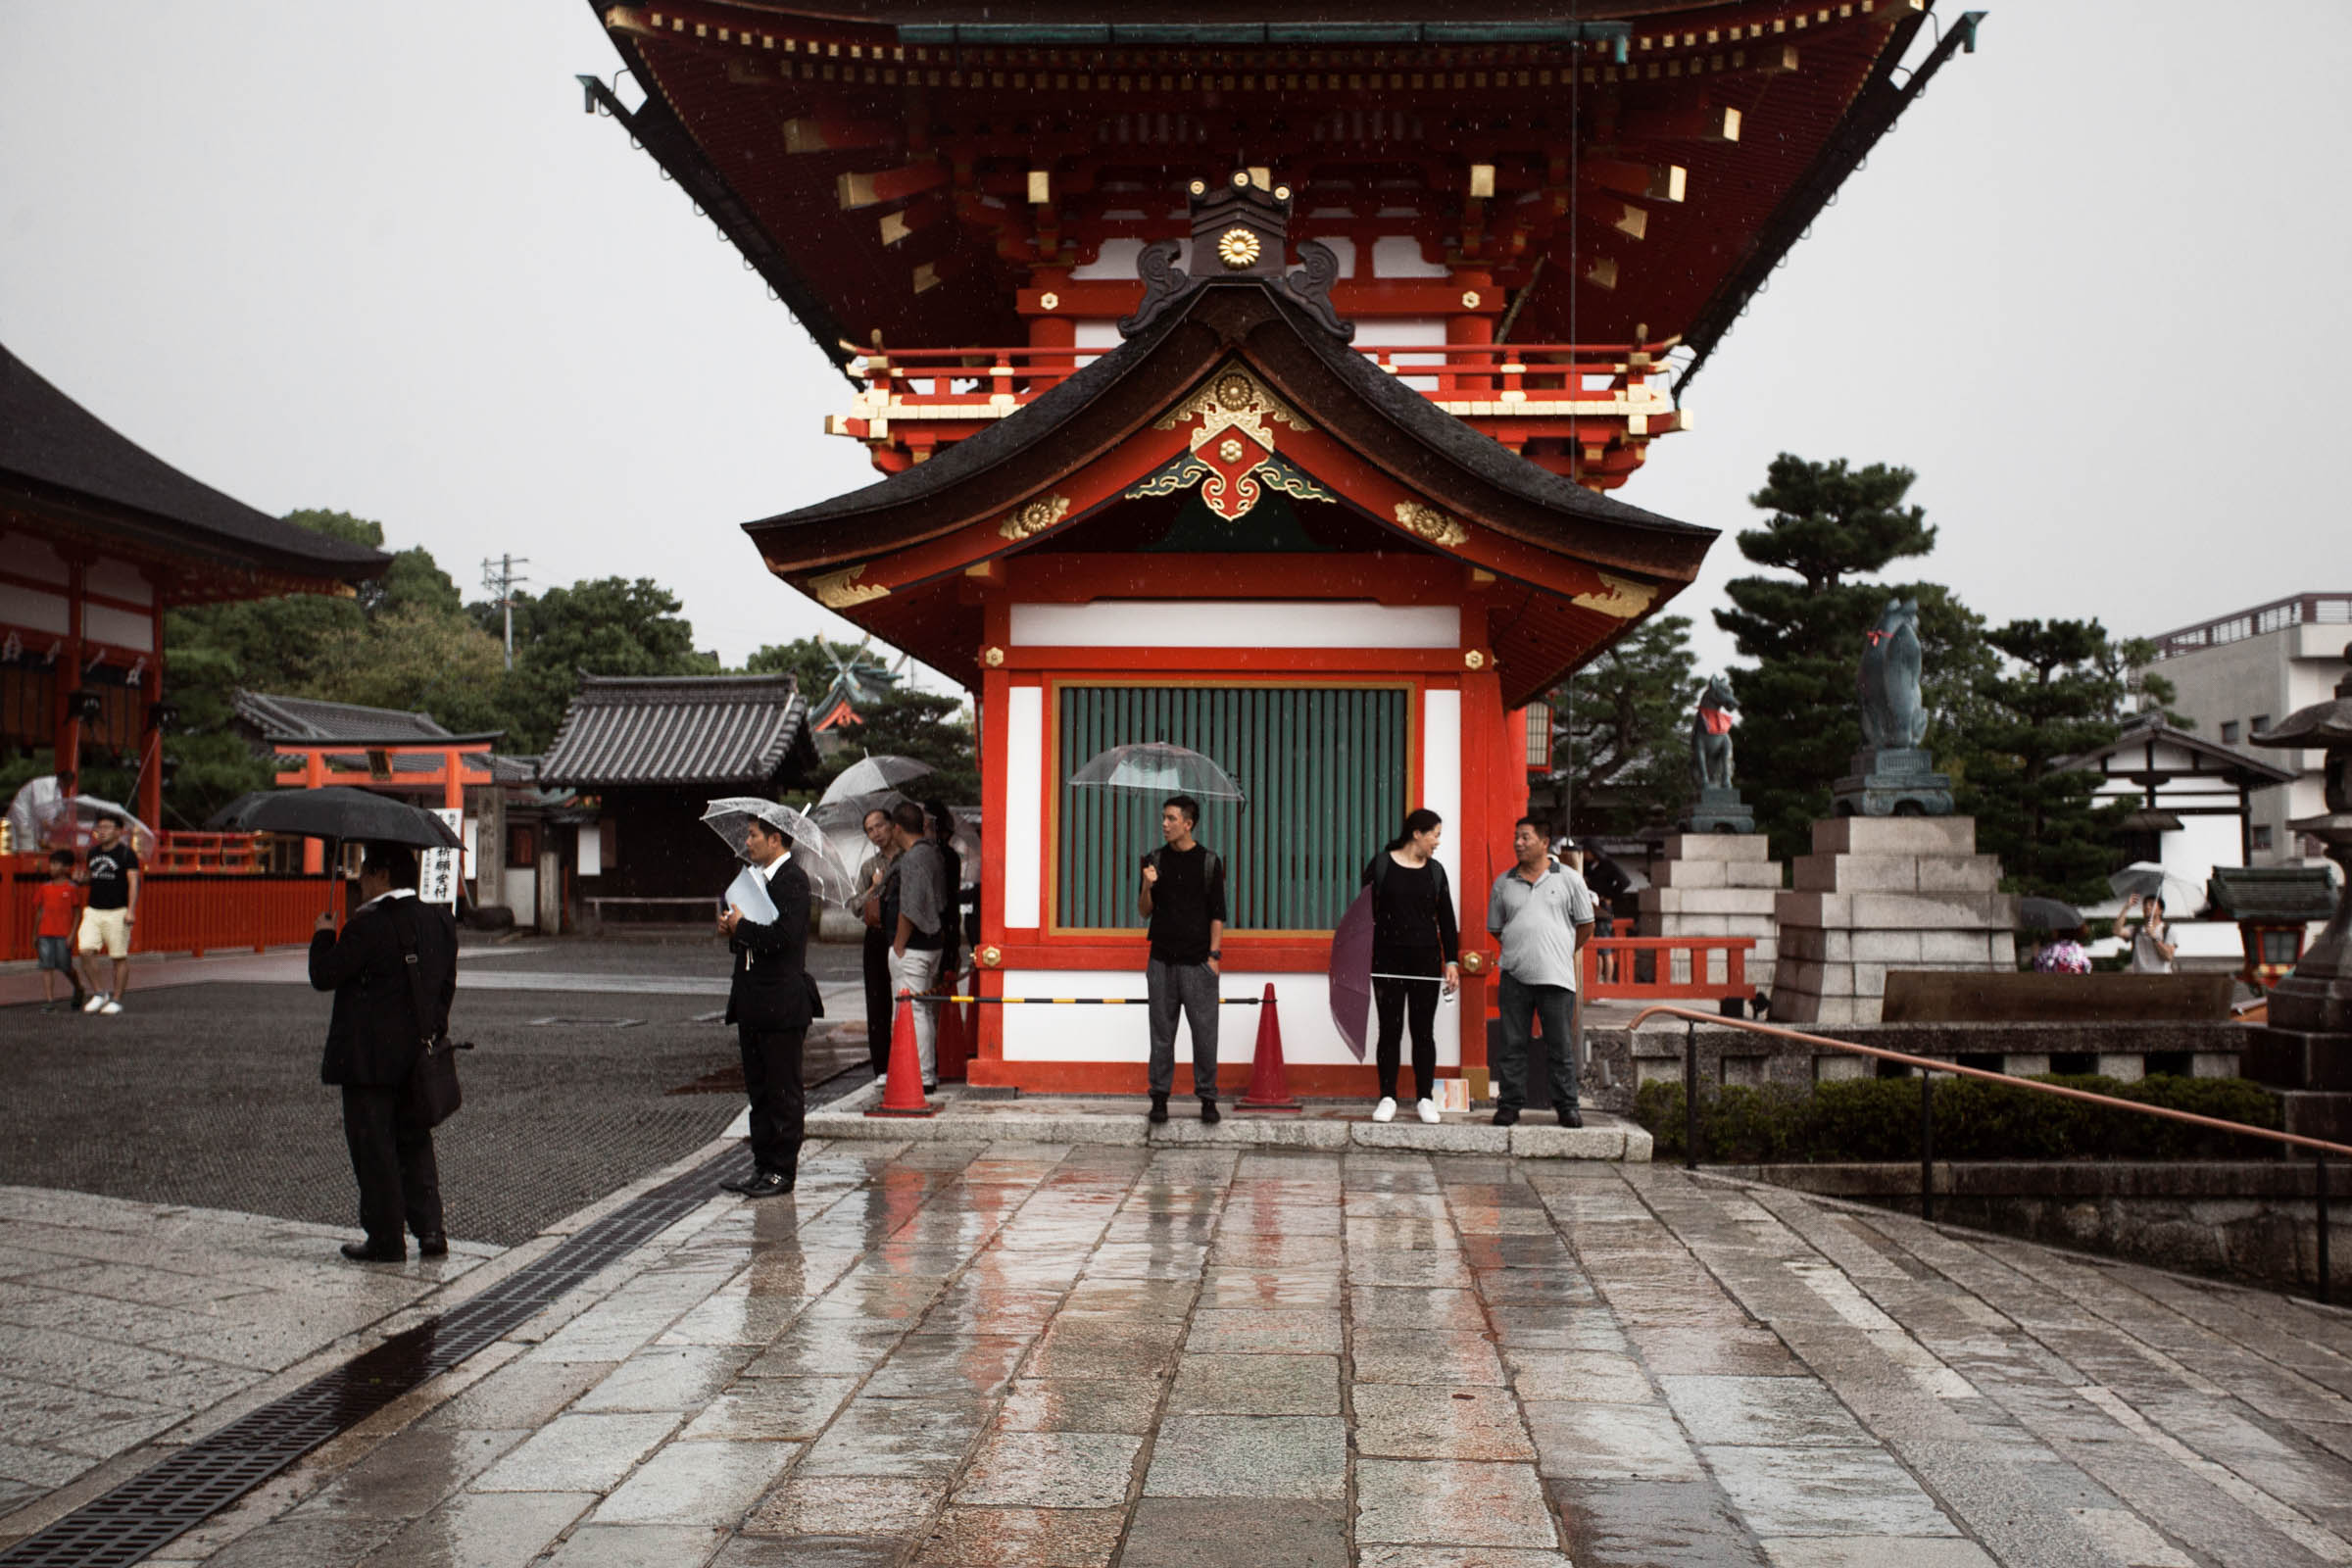 Chacon Images_Japan_Web-61.jpg